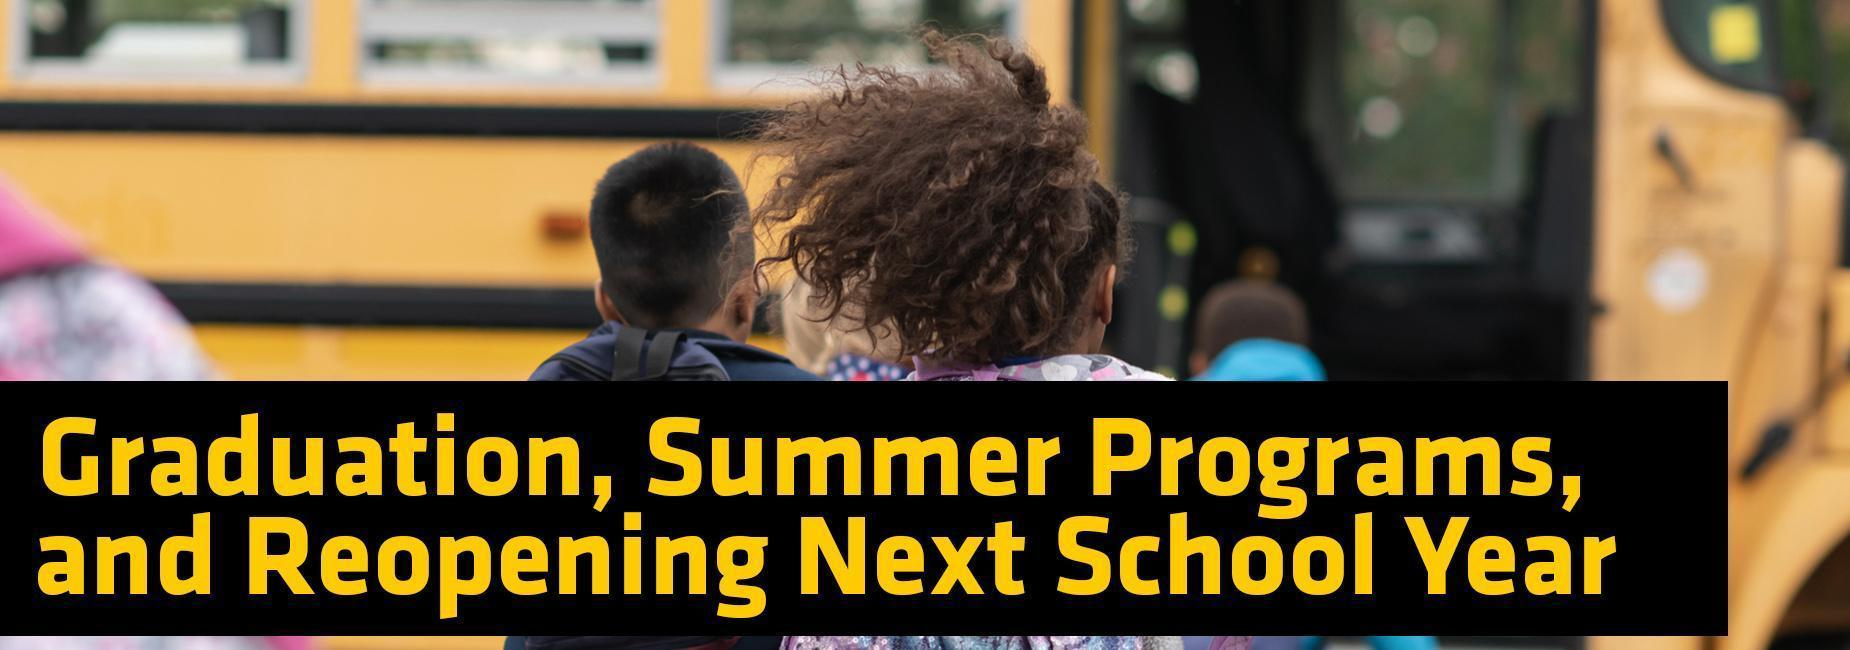 graduation, summer programs, and reopening next school year